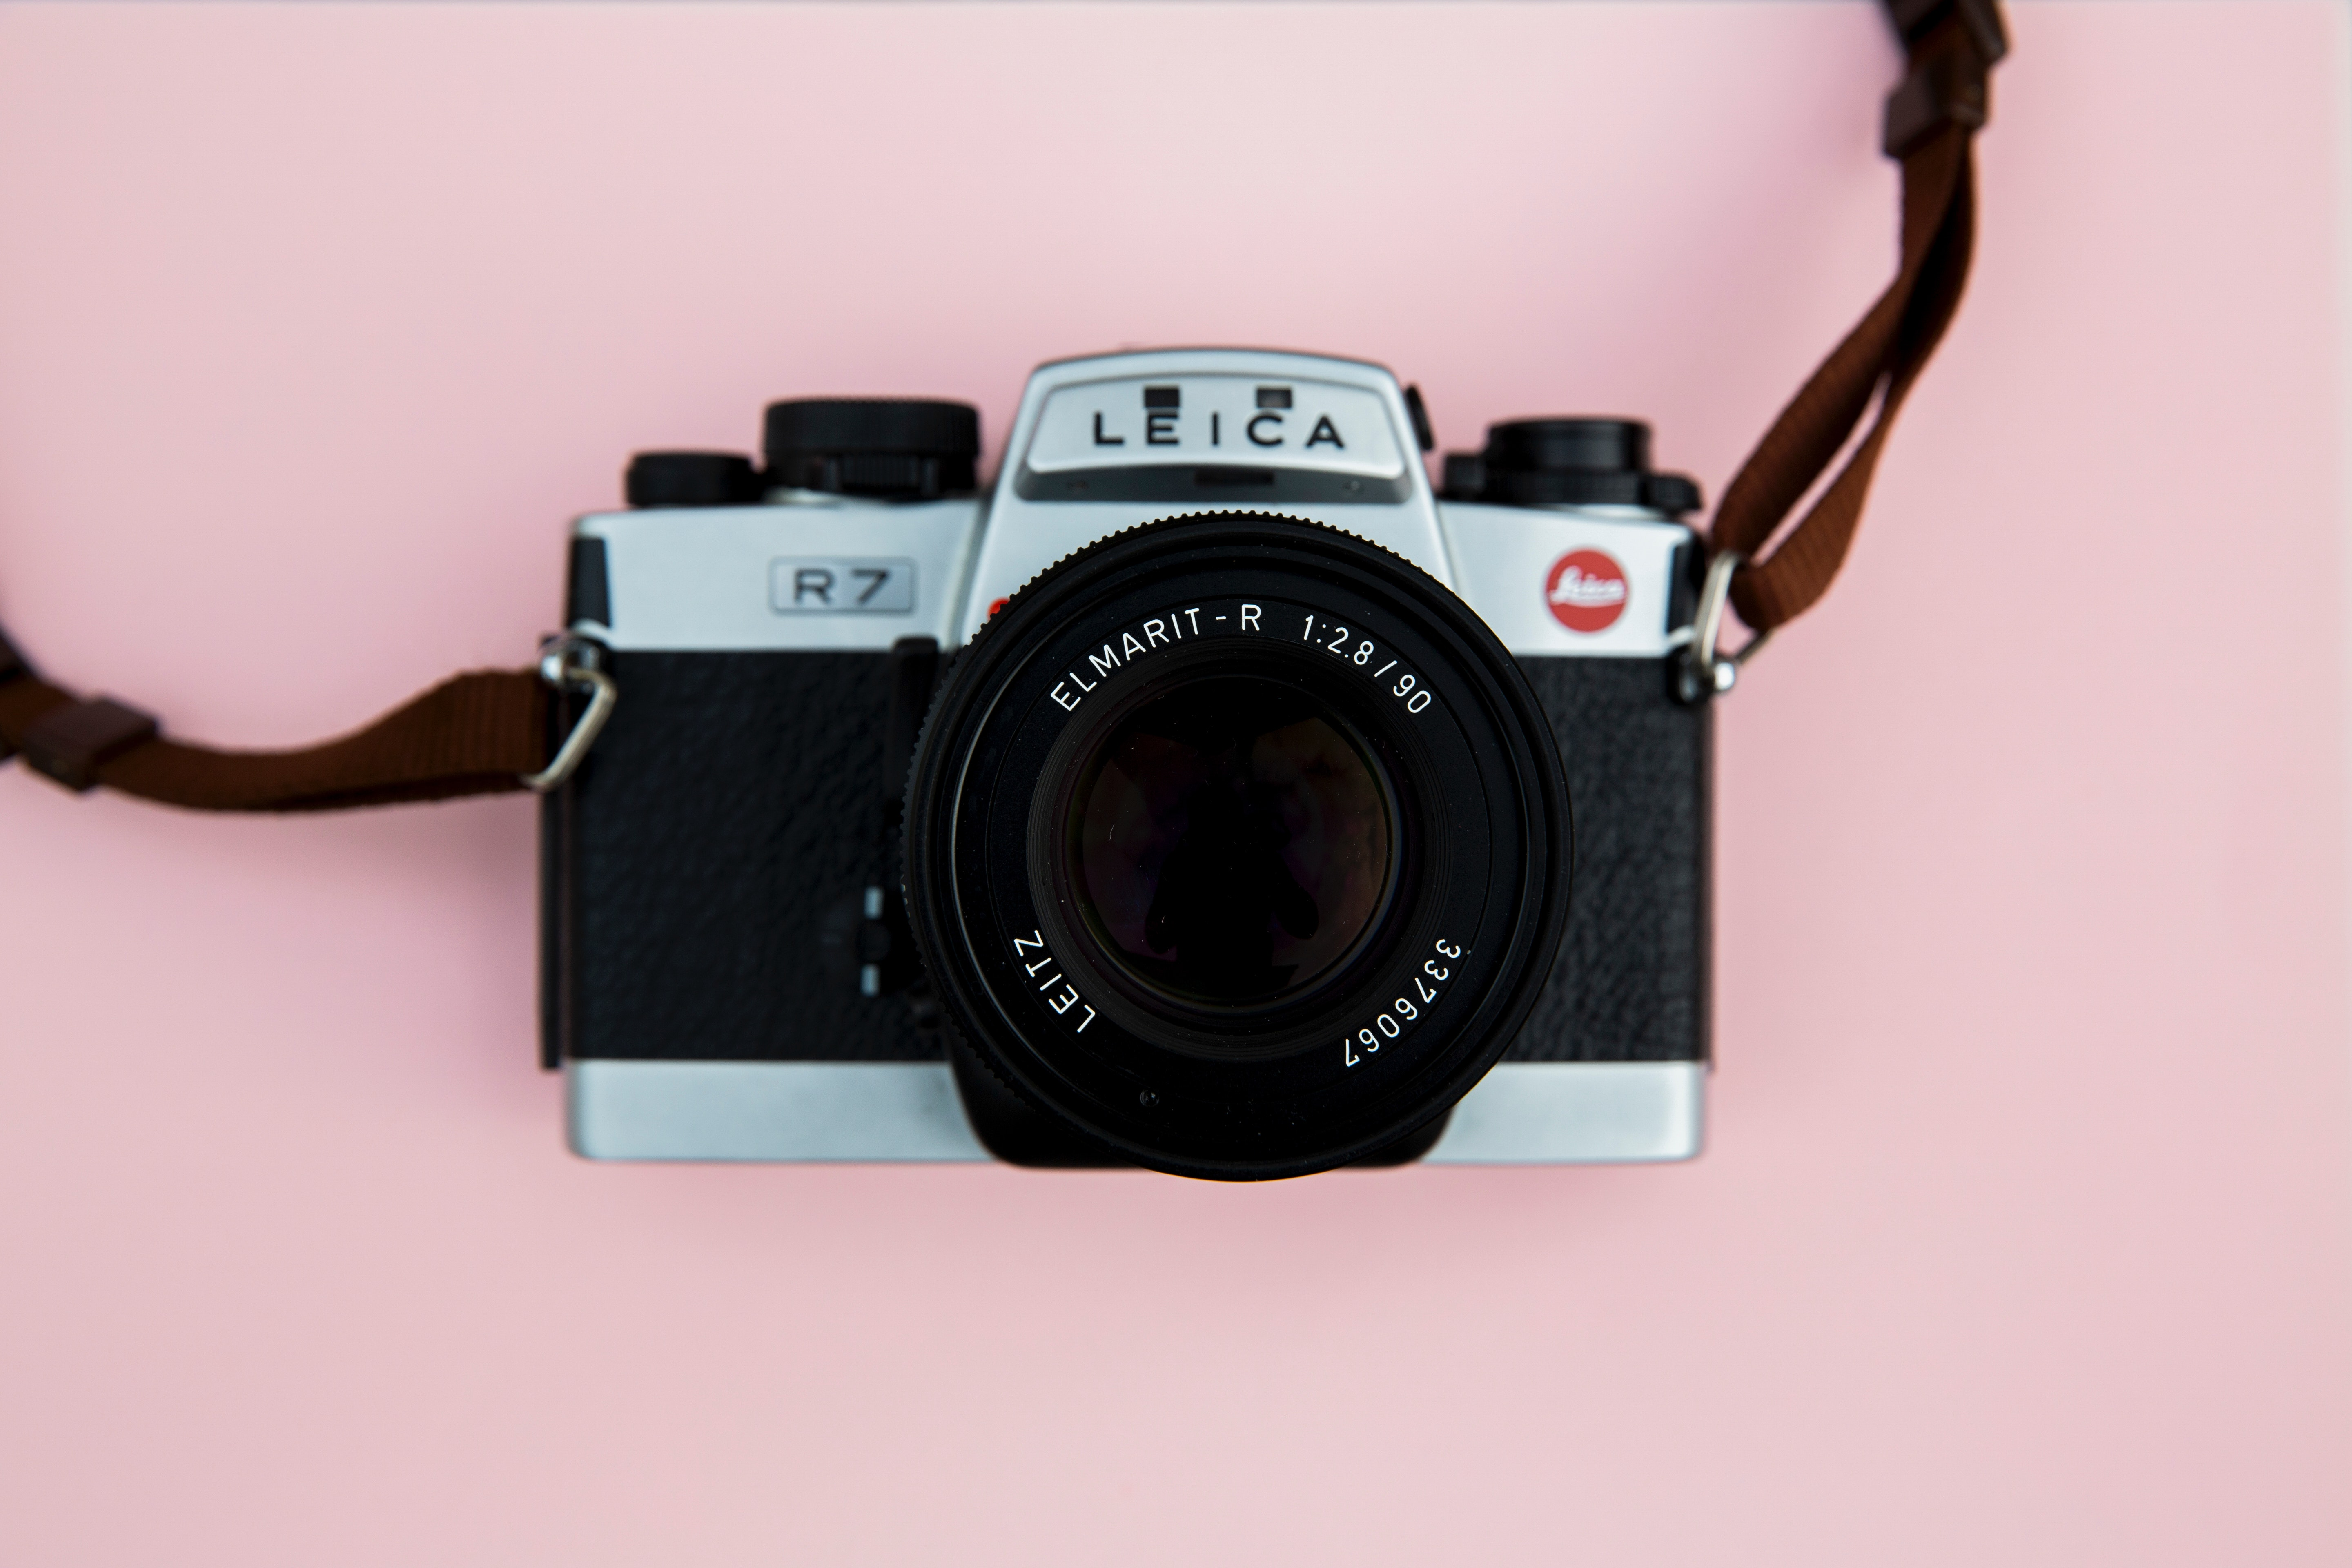 An in-depth review of the best Leica compact cameras reviewed in 2019.